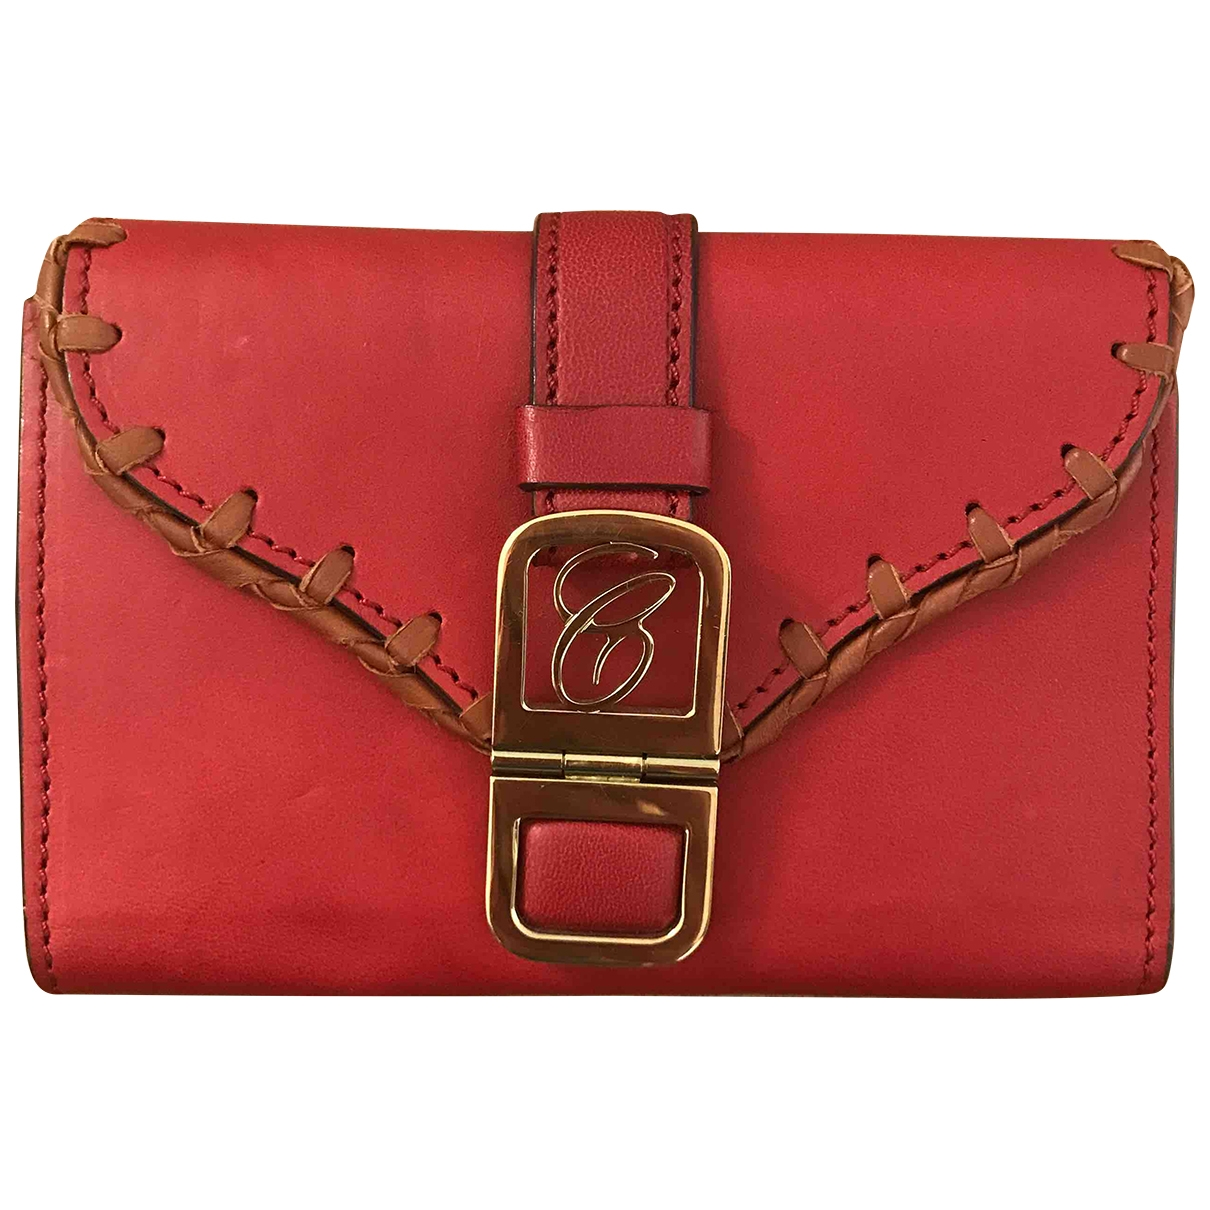 Chloé \N Red Leather wallet for Women \N